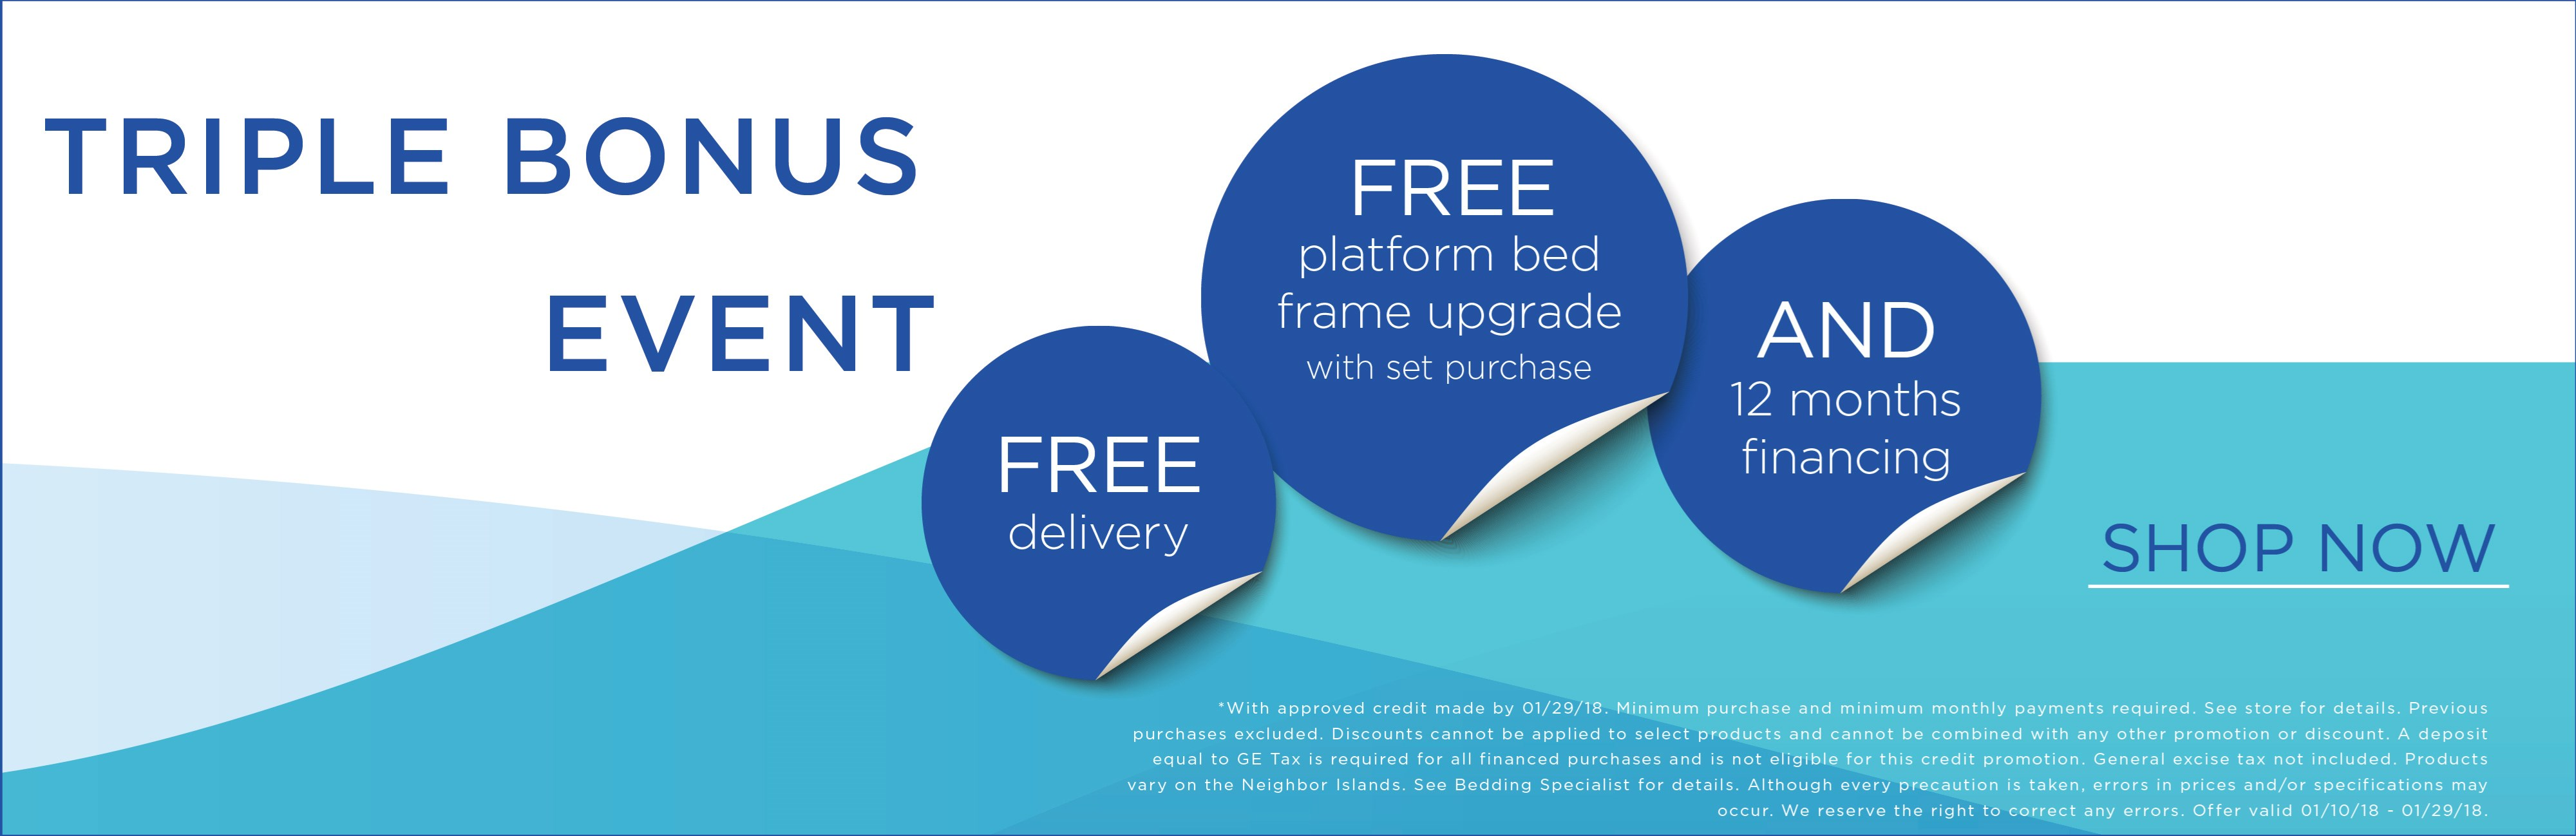 Free delivery, platform bed frame upgrade with purchase of set, and 12 months financing; see store for details.